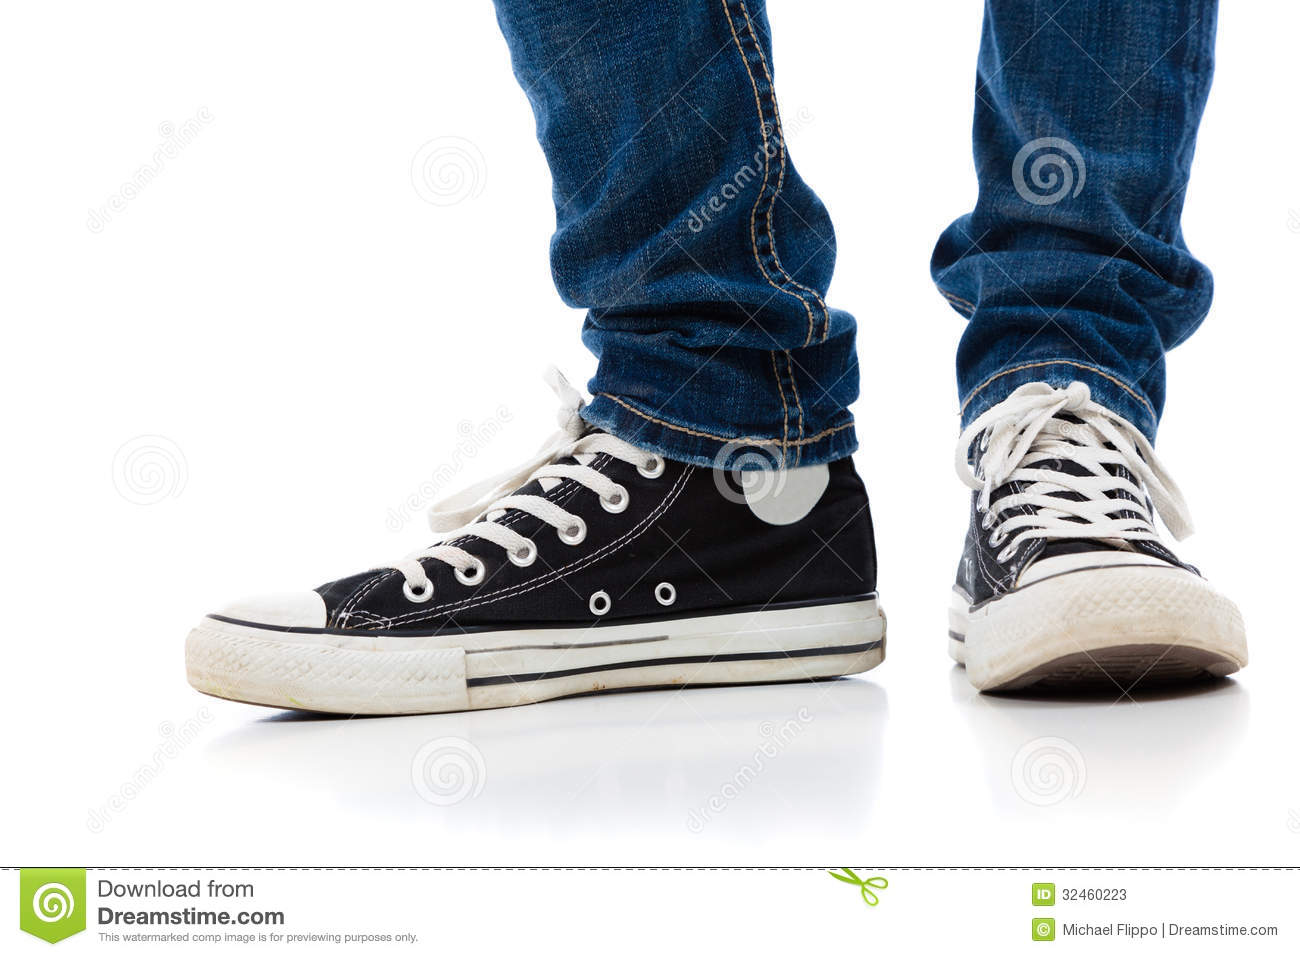 Legs With Tennis Shoes And Jeans Stock Photos - Image: 32460223